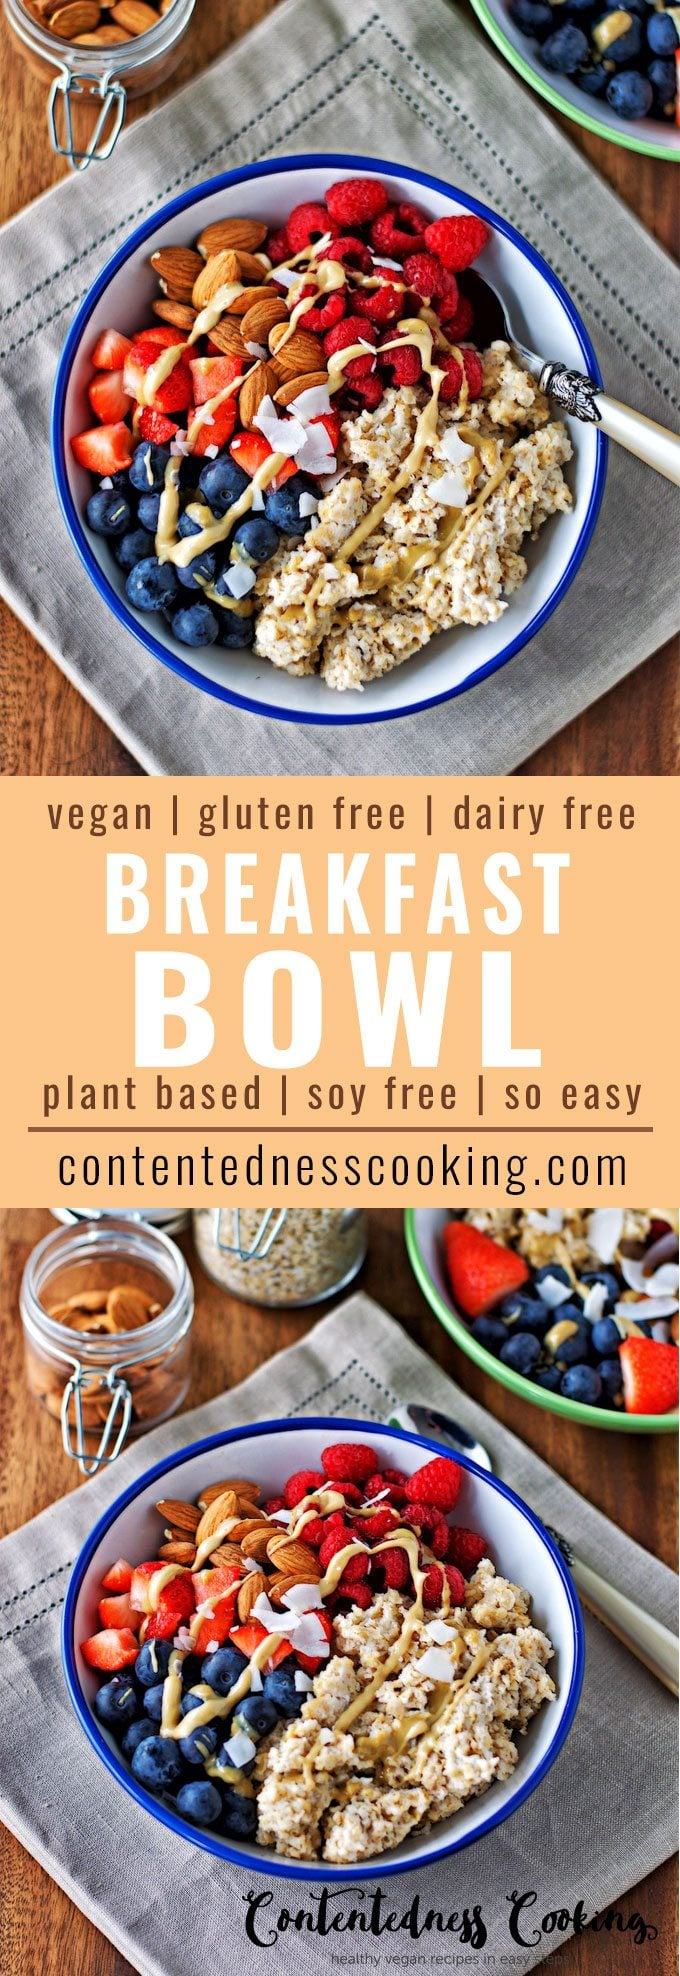 Vegan Breakfast Bowl | #vegan #glutenfree #contentednesscooking